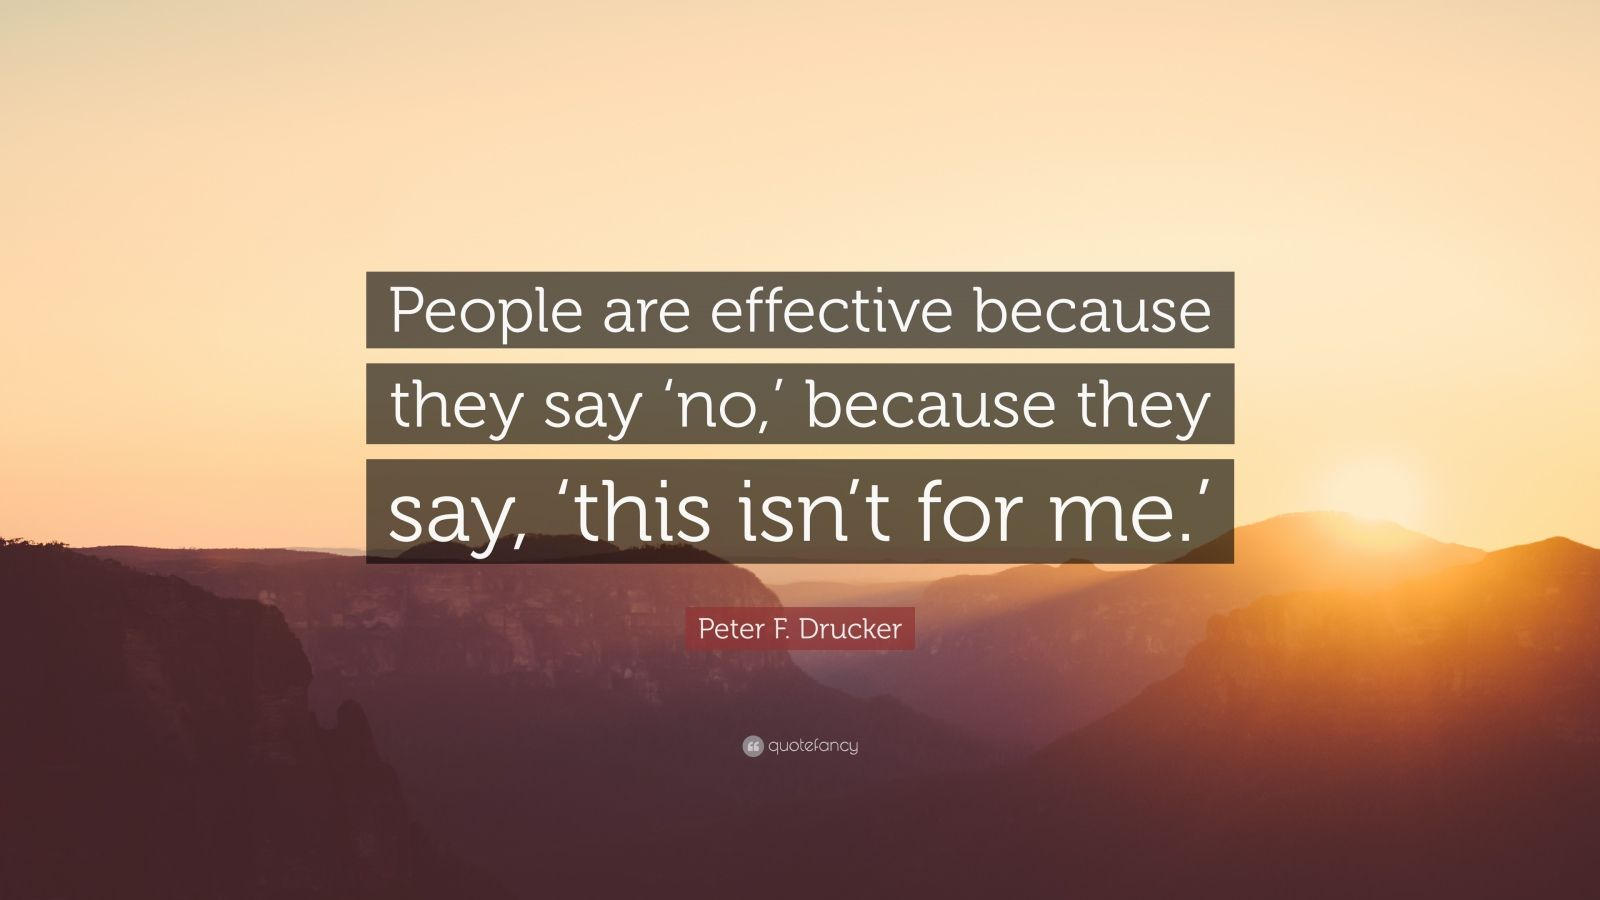 """Peter F. Drucker Quote: """"People are effective because they say 'no,' because they say, 'this isn't for me.'"""""""